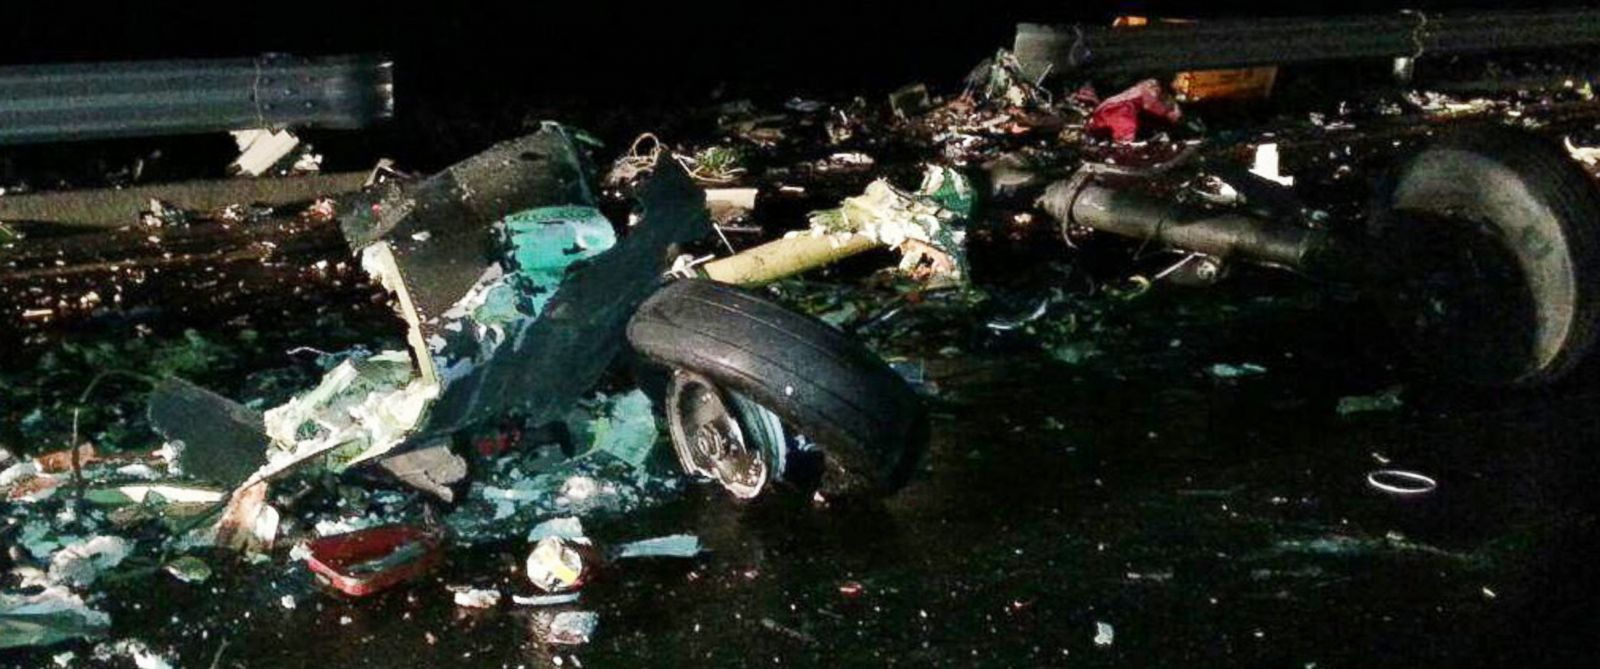 PHOTO: The wreckage of a U.S. military AH-64 Apache helicopter is strewn on a road in Wonju, South Korea, Nov. 23, 2015.